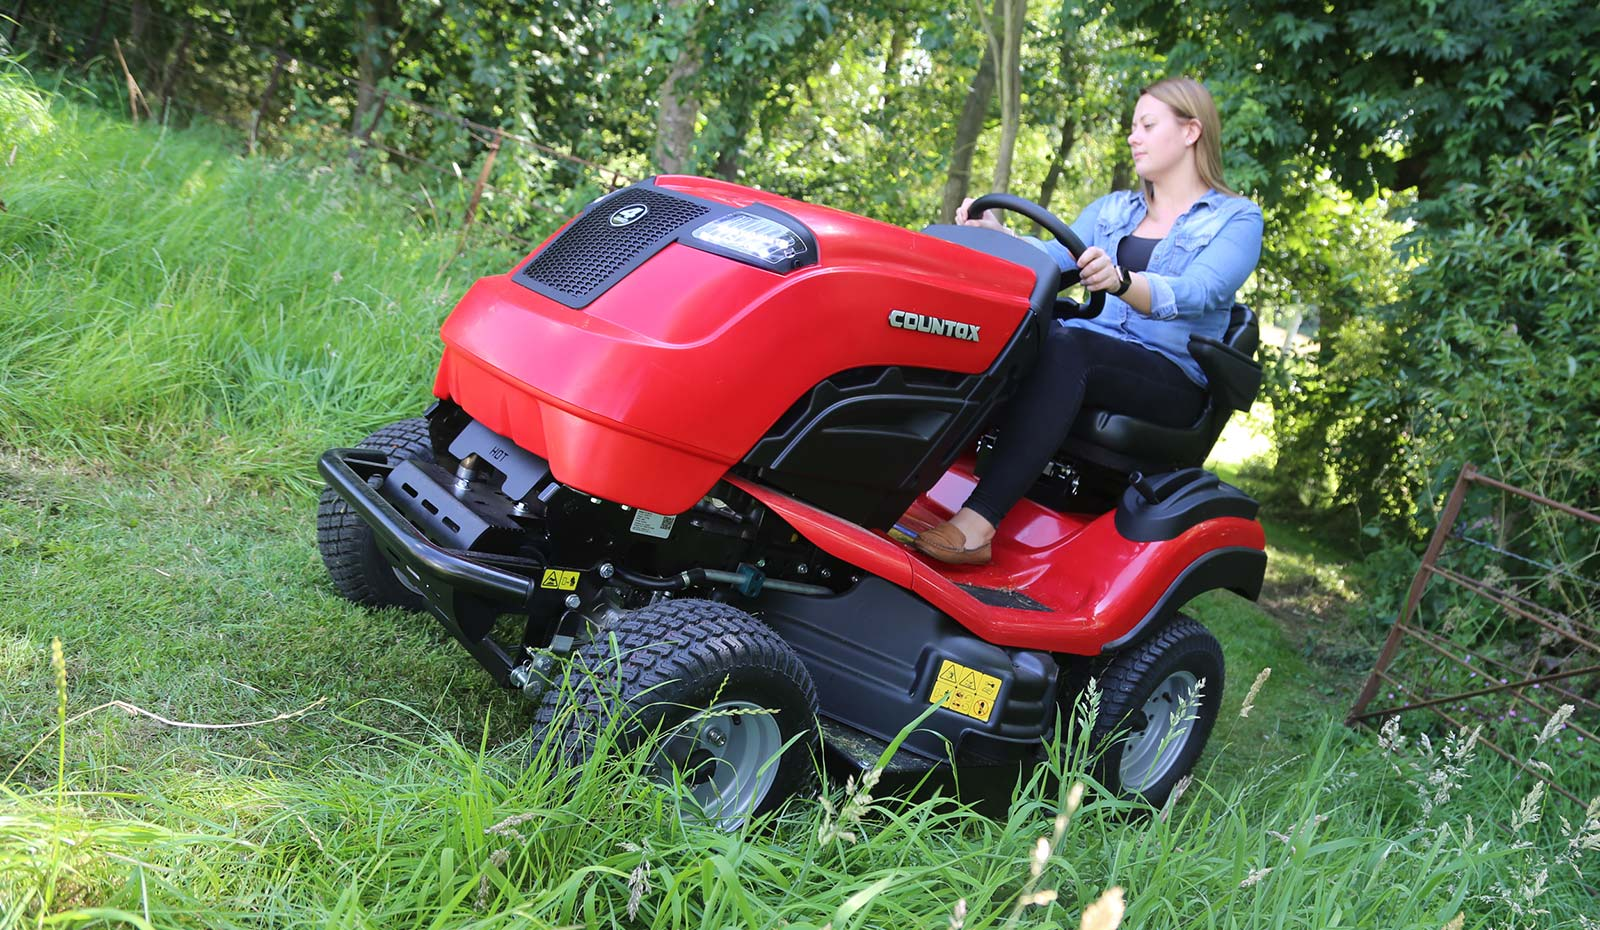 Countax B Series 4WD garden tractor ride on mower with HGM cutter deck cutting on slope by gate